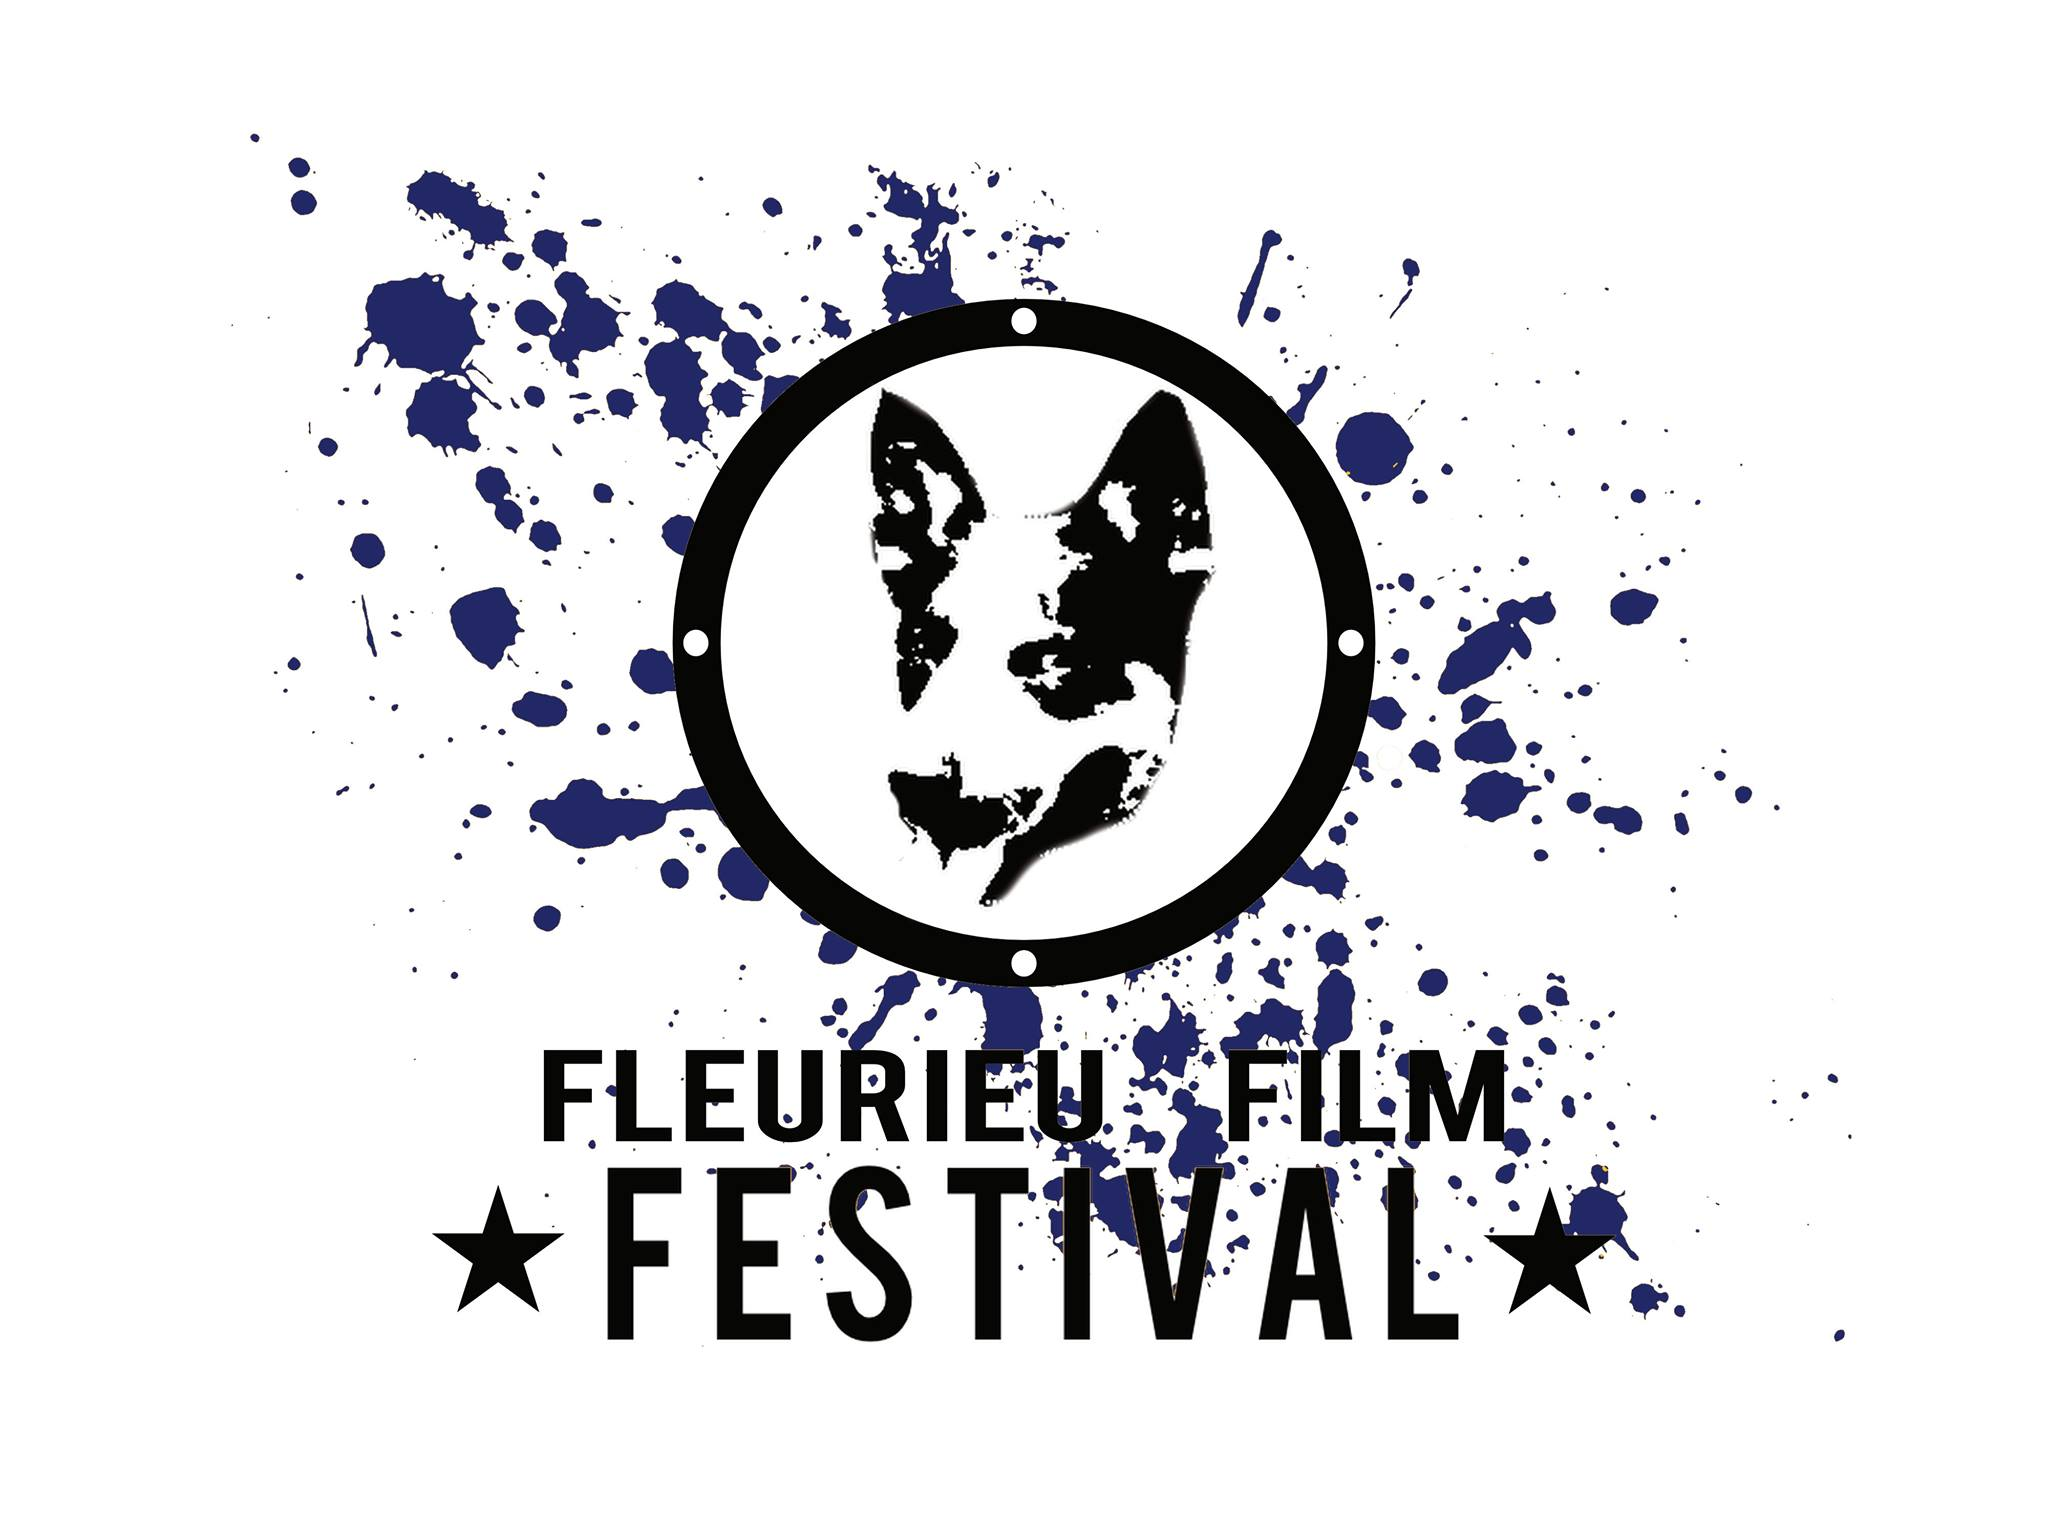 Fleurieu Film Festival - Great Ocean Road Tourism